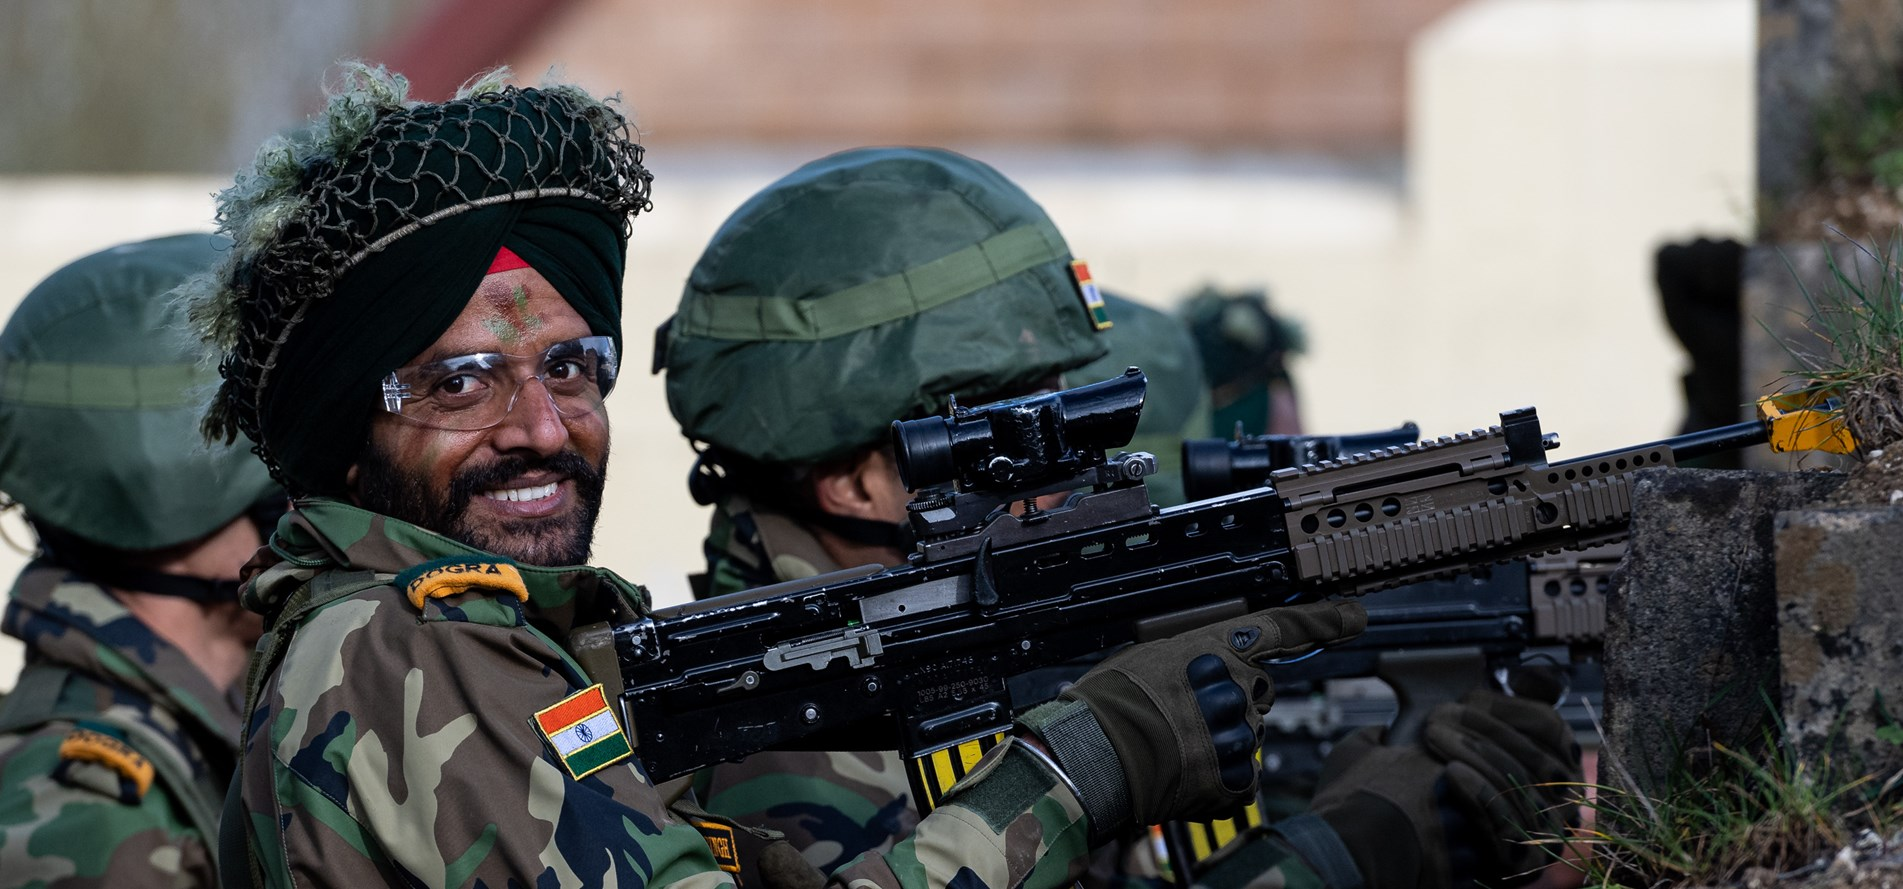 APOSEA-2020-014-1 Rifles and the Indian Army-RK-044.JPG